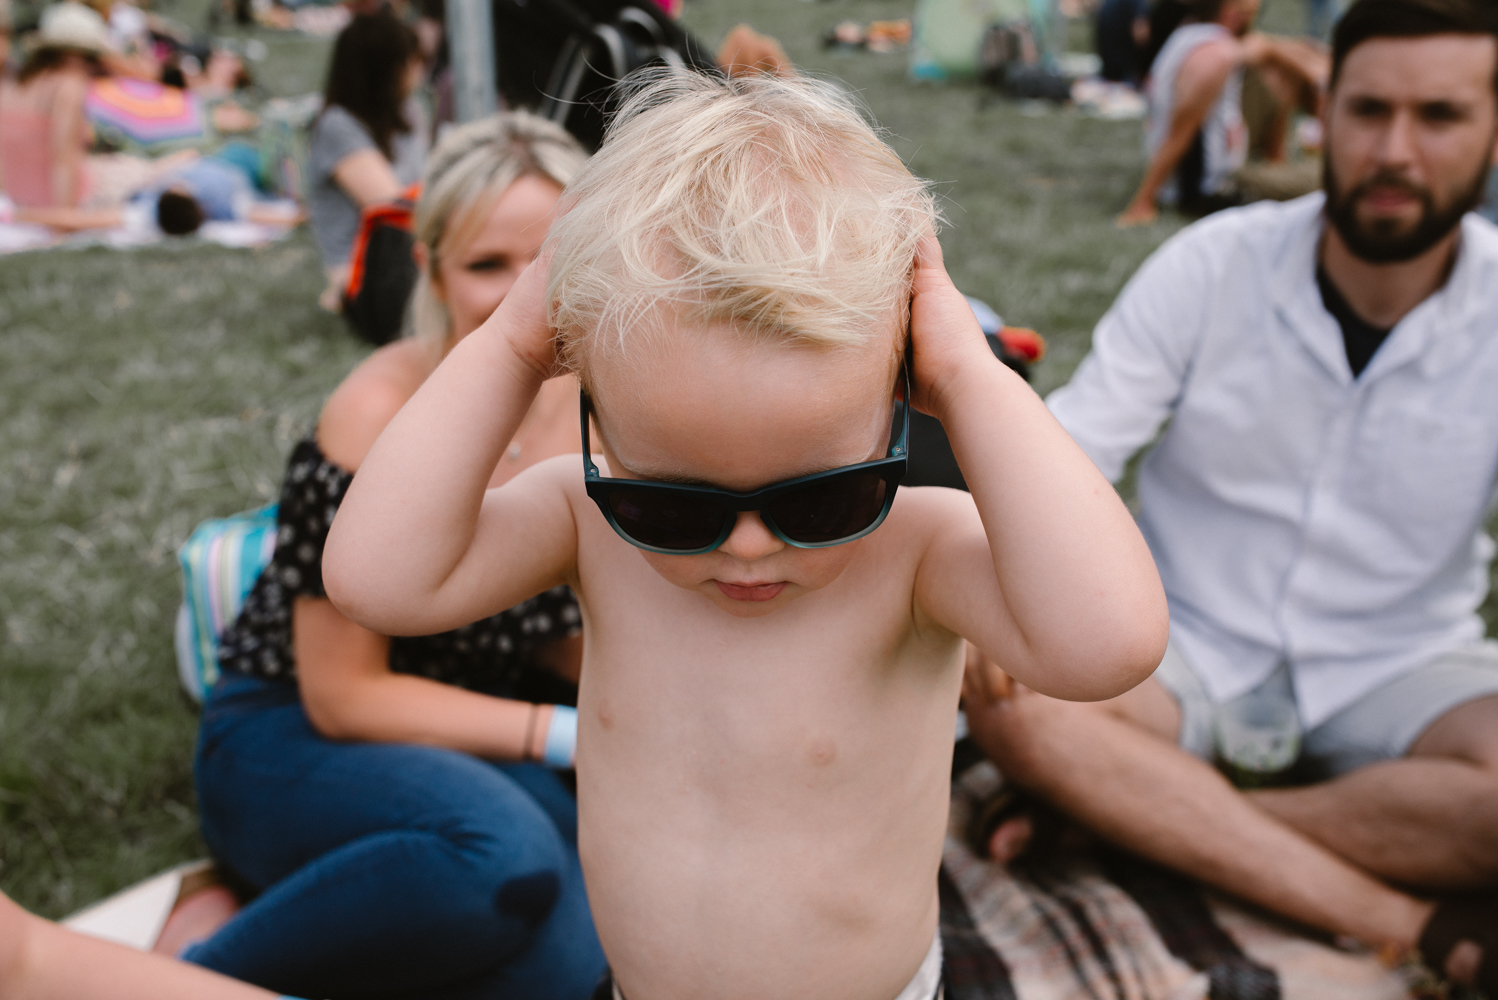 Little dude at a festival